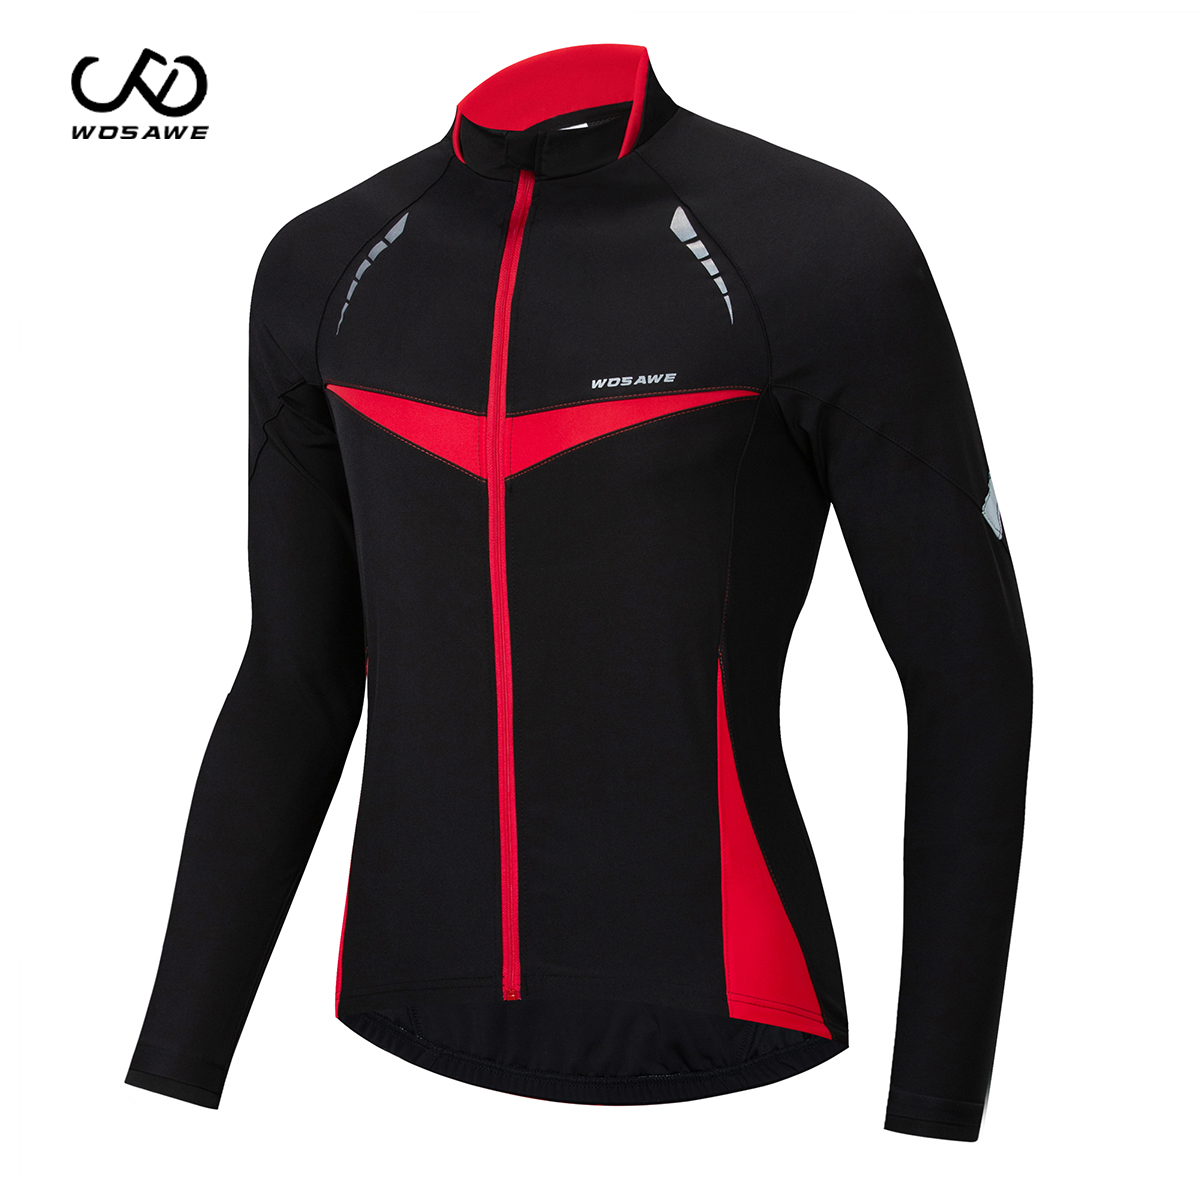 WOSAWE Winter Outdoor Sports Thermal Cycling Jackets MTB Bike Jacket Windproof Water Repellet riding Coat Bike Cycle Clothing